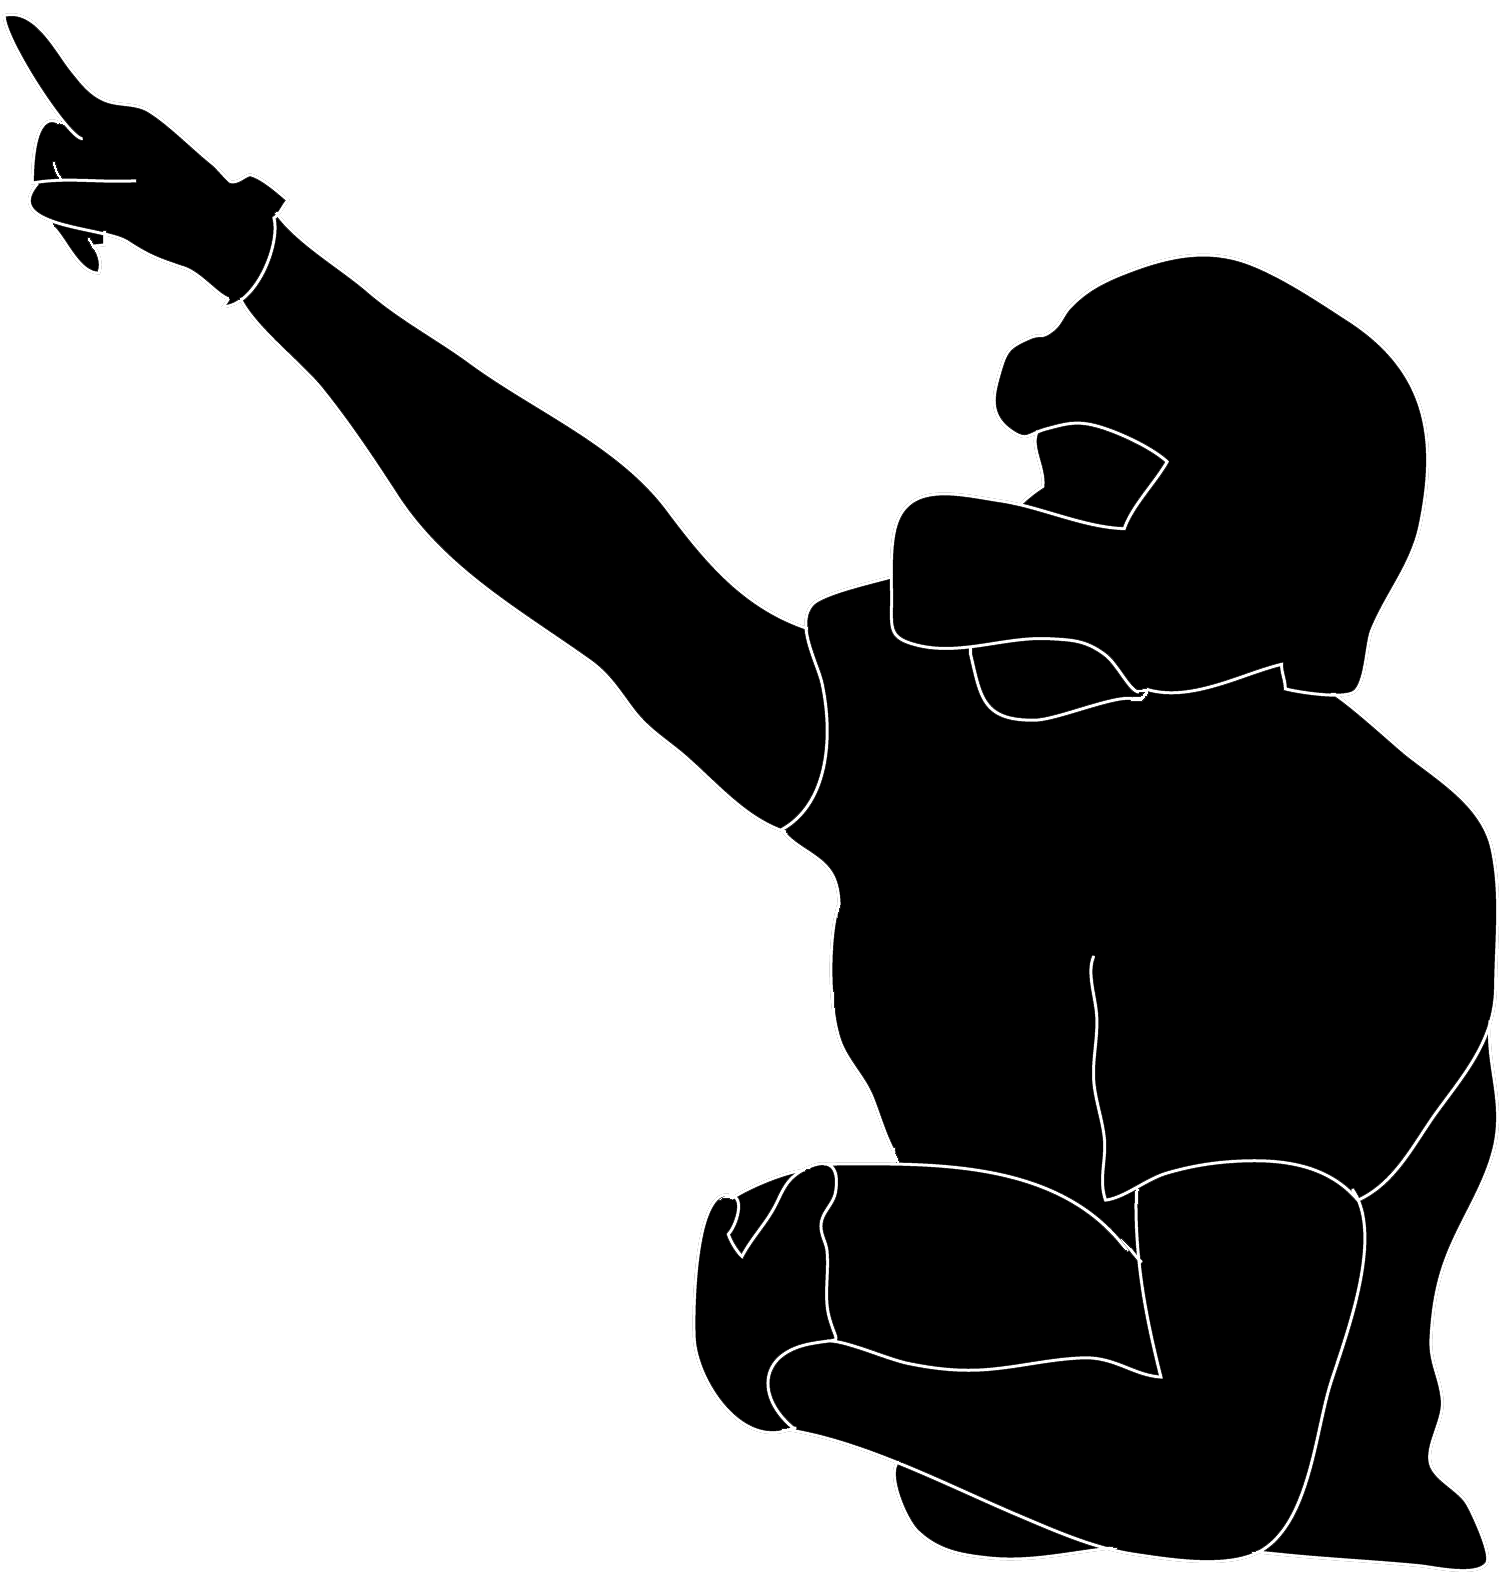 Kneeling football player clipart graphic royalty free Nfl Silhouette at GetDrawings.com | Free for personal use Nfl ... graphic royalty free